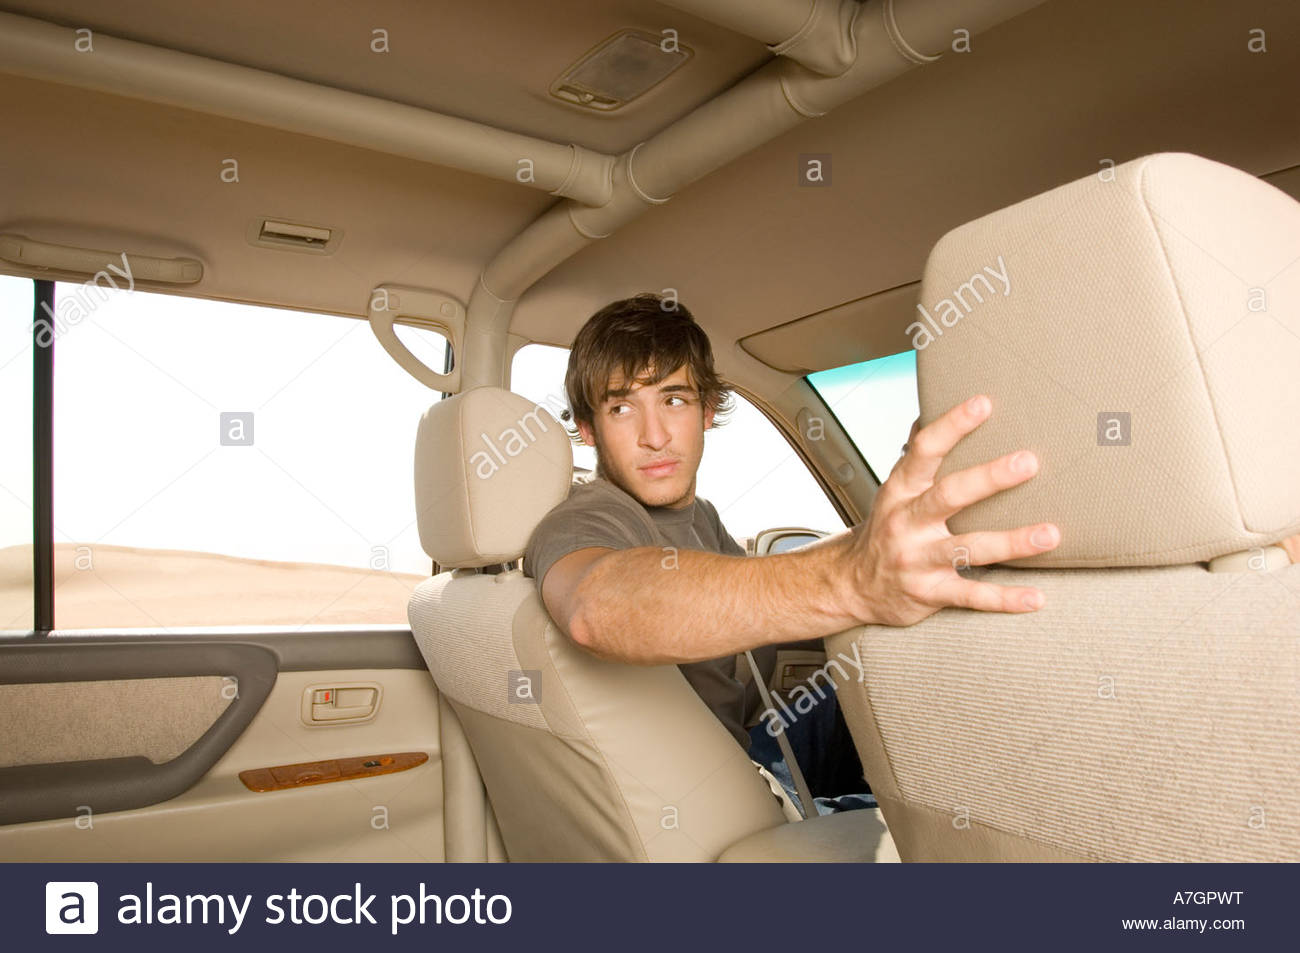 A young man in a car - Stock Image